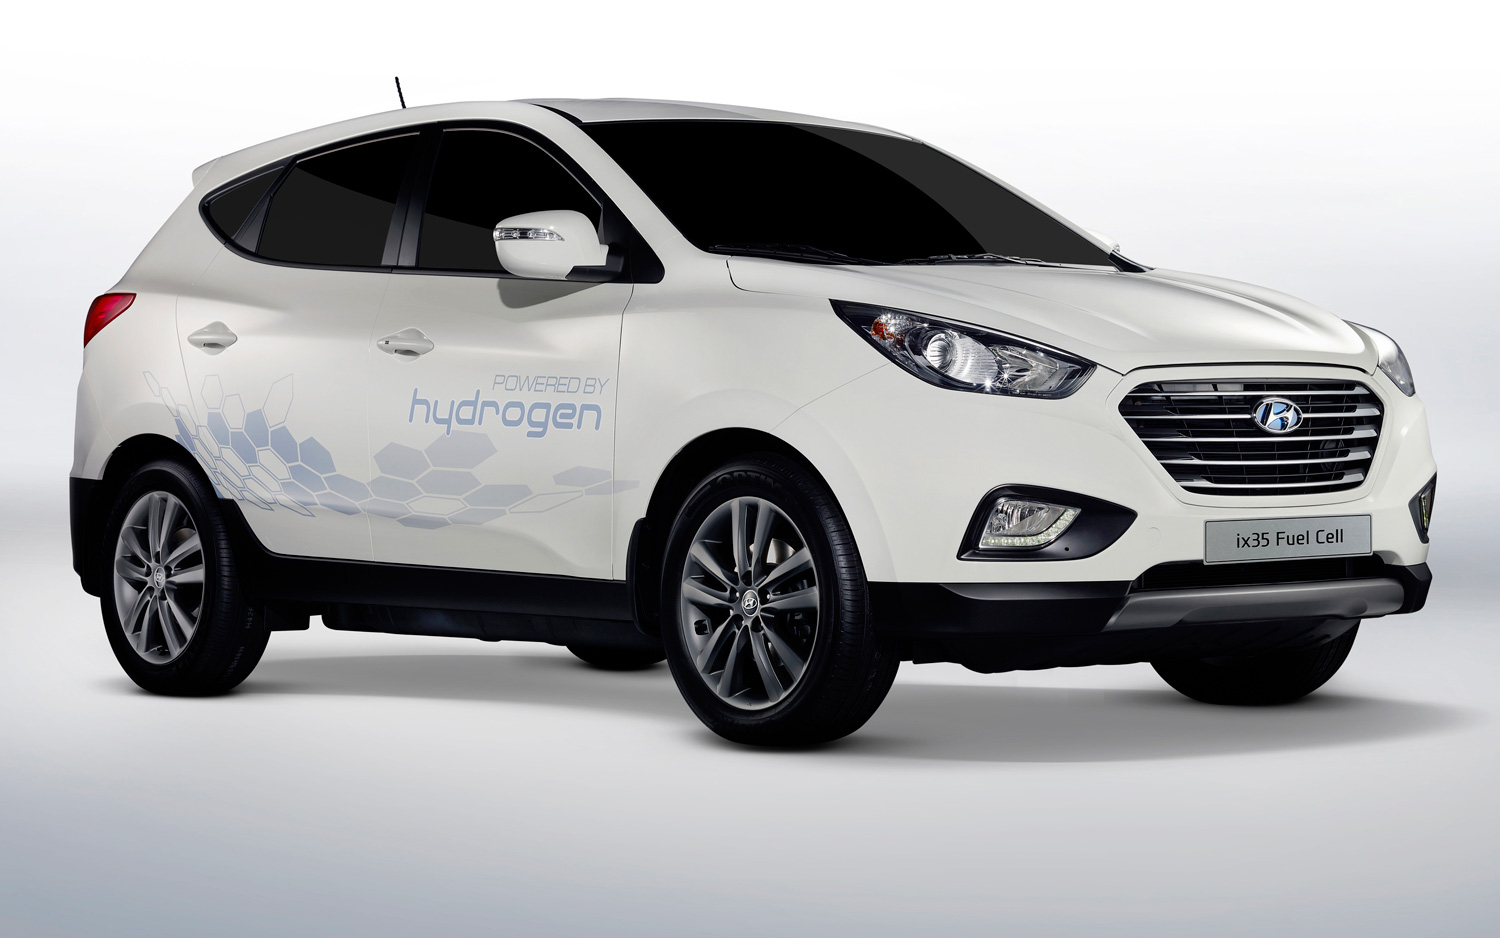 Hyundai says that hydrogen growth is heavily dependant on infrastructure